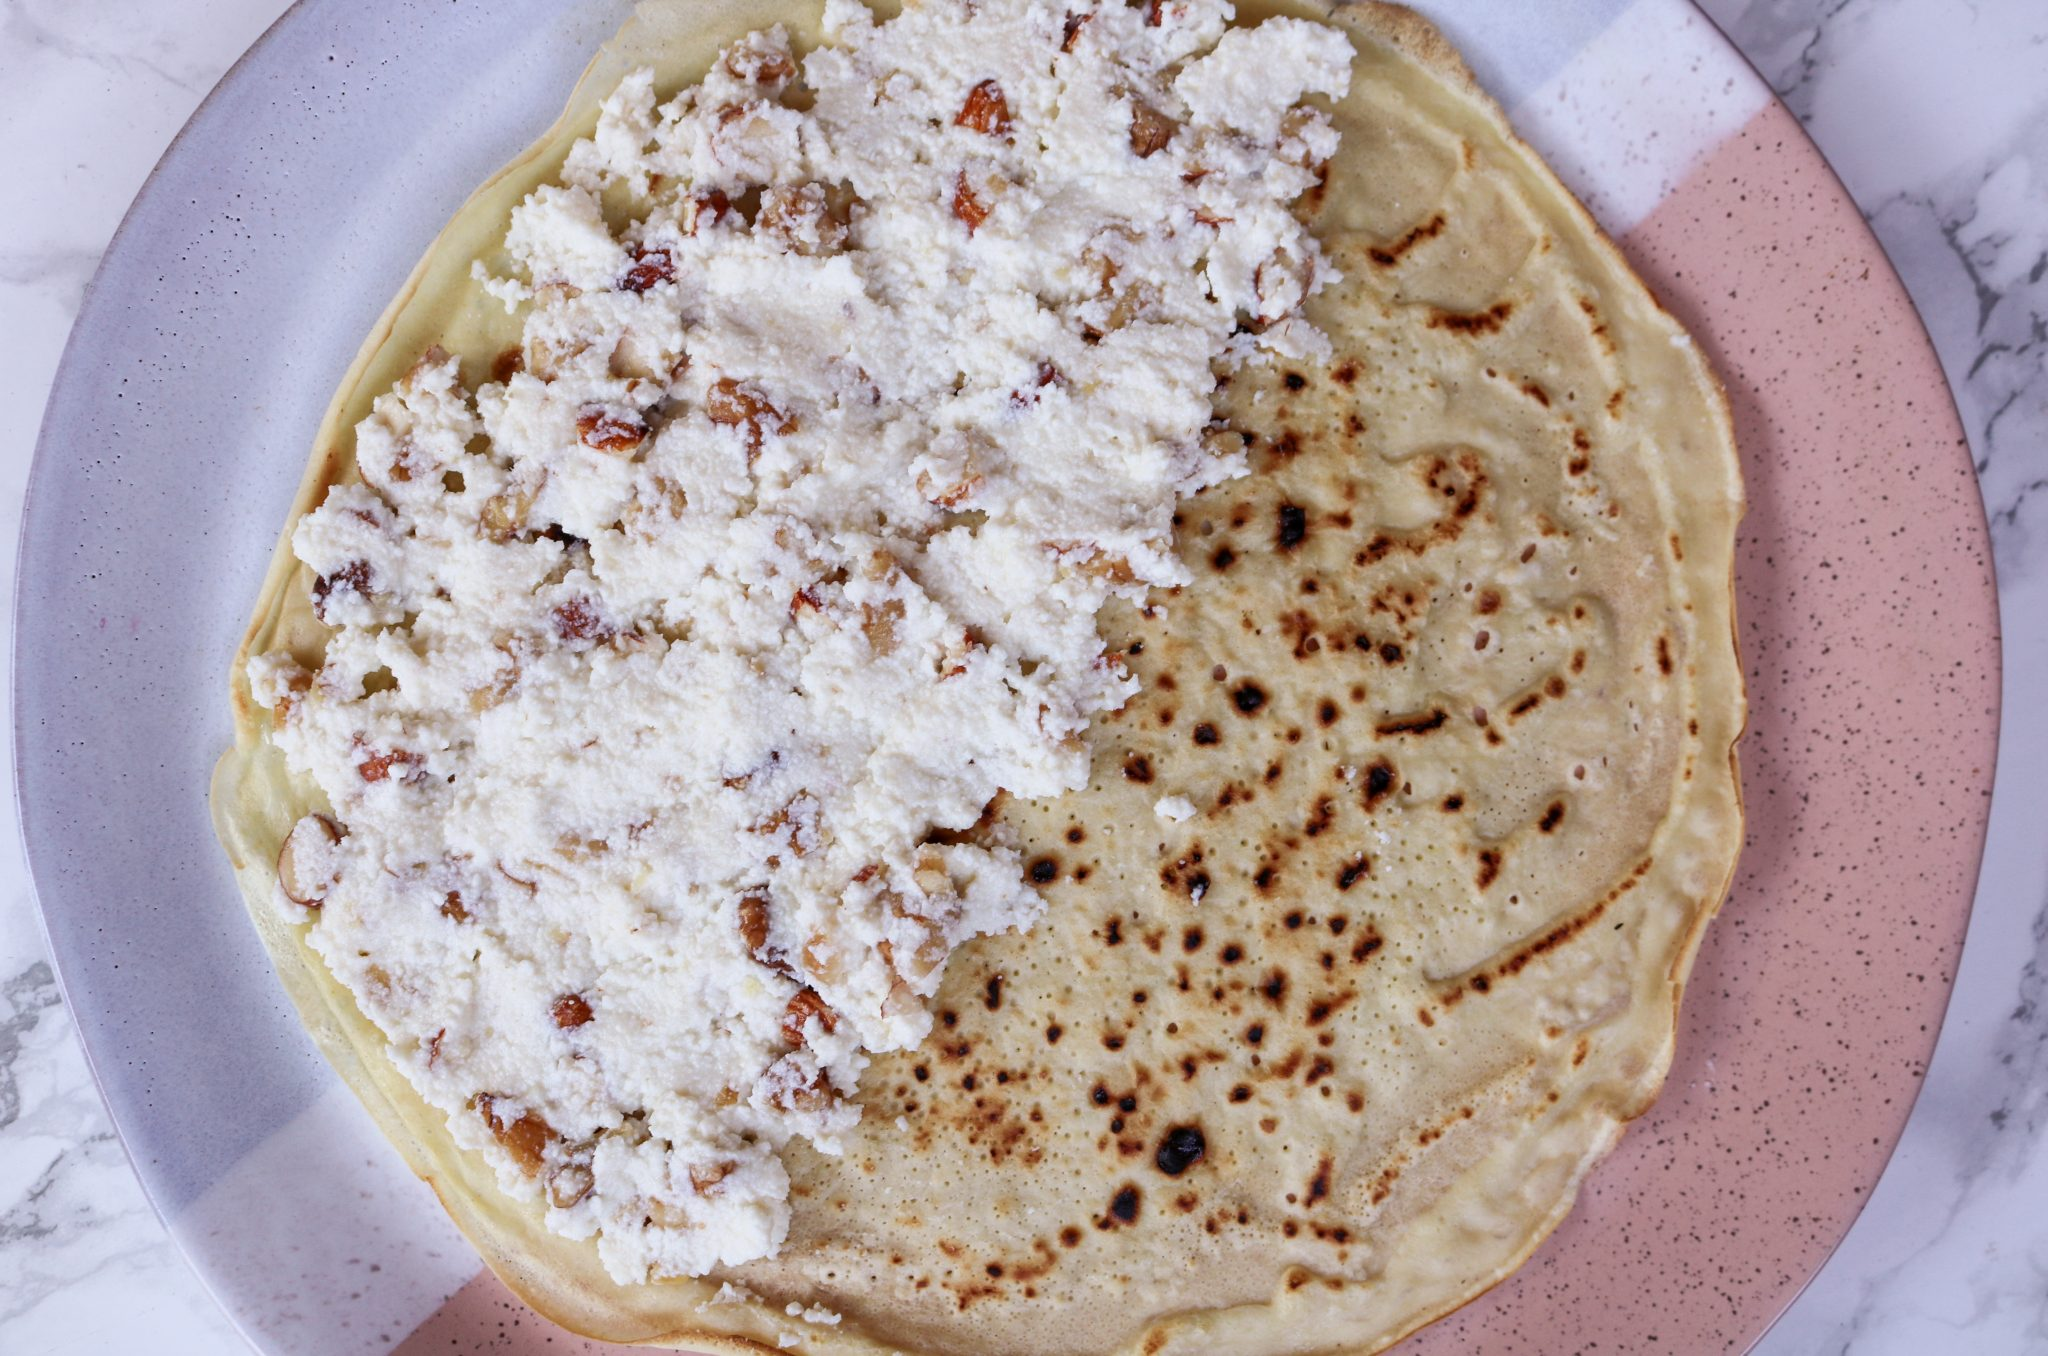 The-Hungarian-Brunette-Healthy-Crepes-Recipe-3-decadent-sweet-fillings-4-of-11.jpg